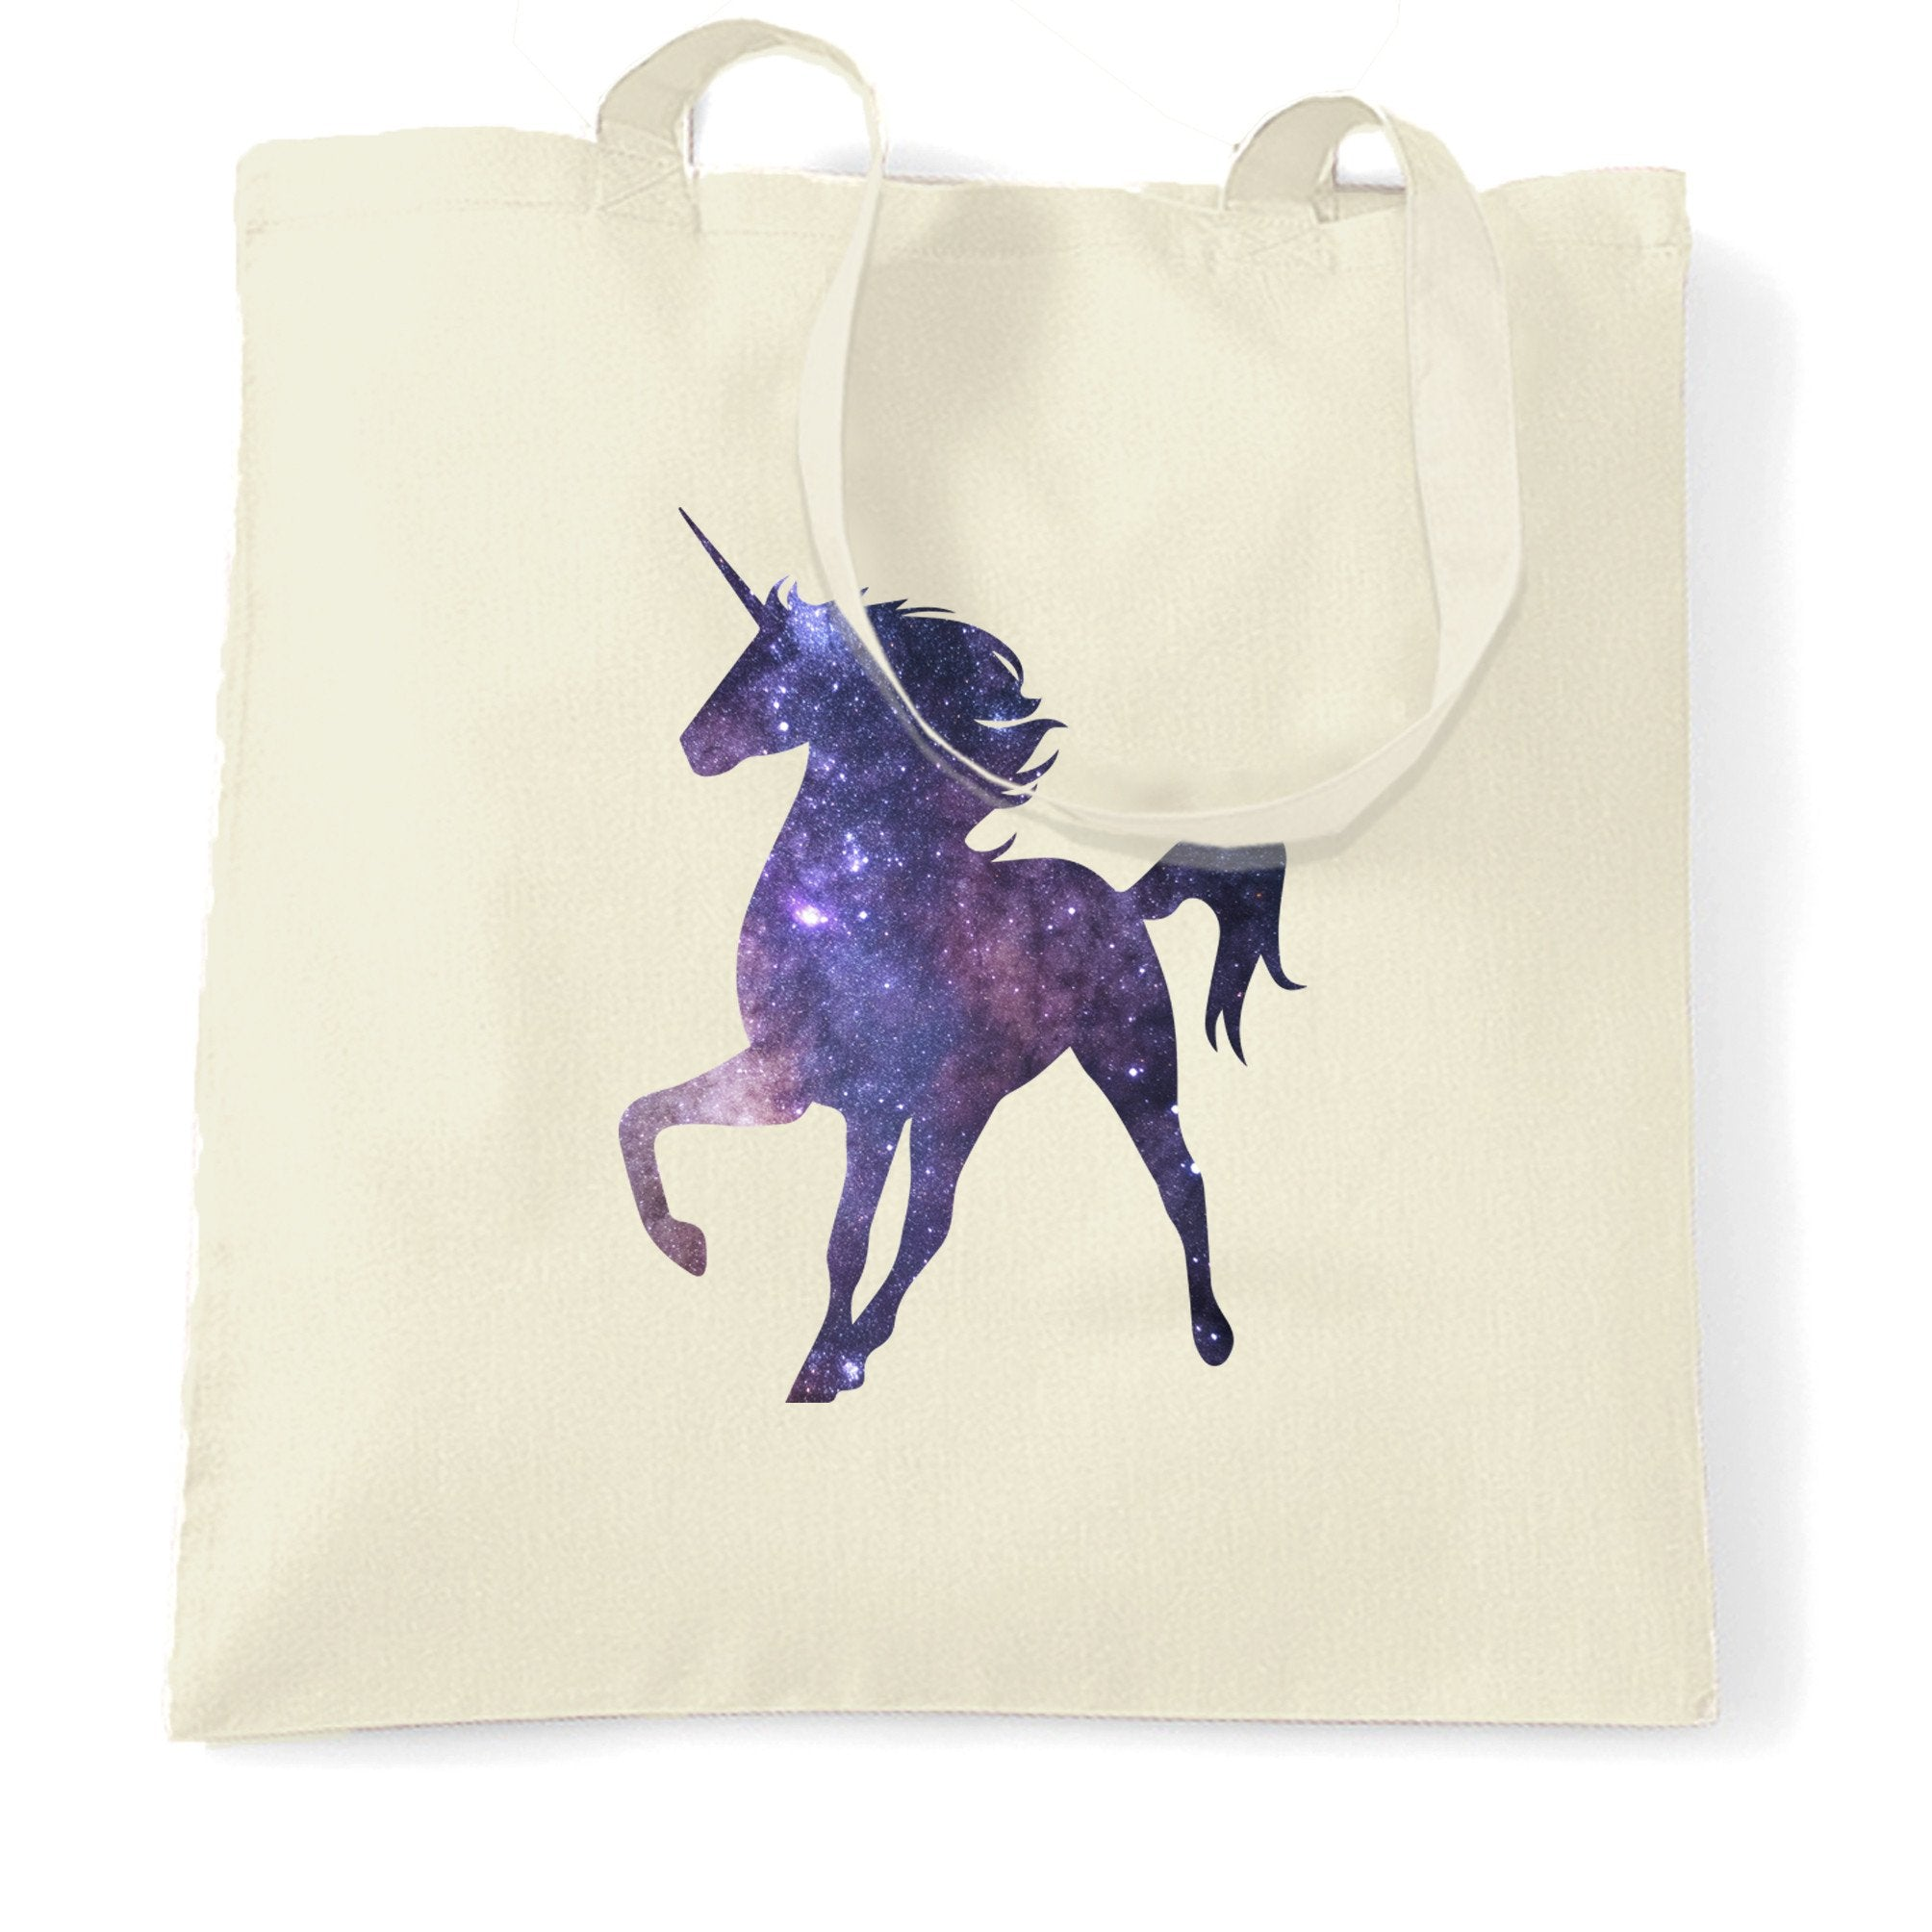 Mythical Space Tote Bag Galaxy Unicorn Silhouette